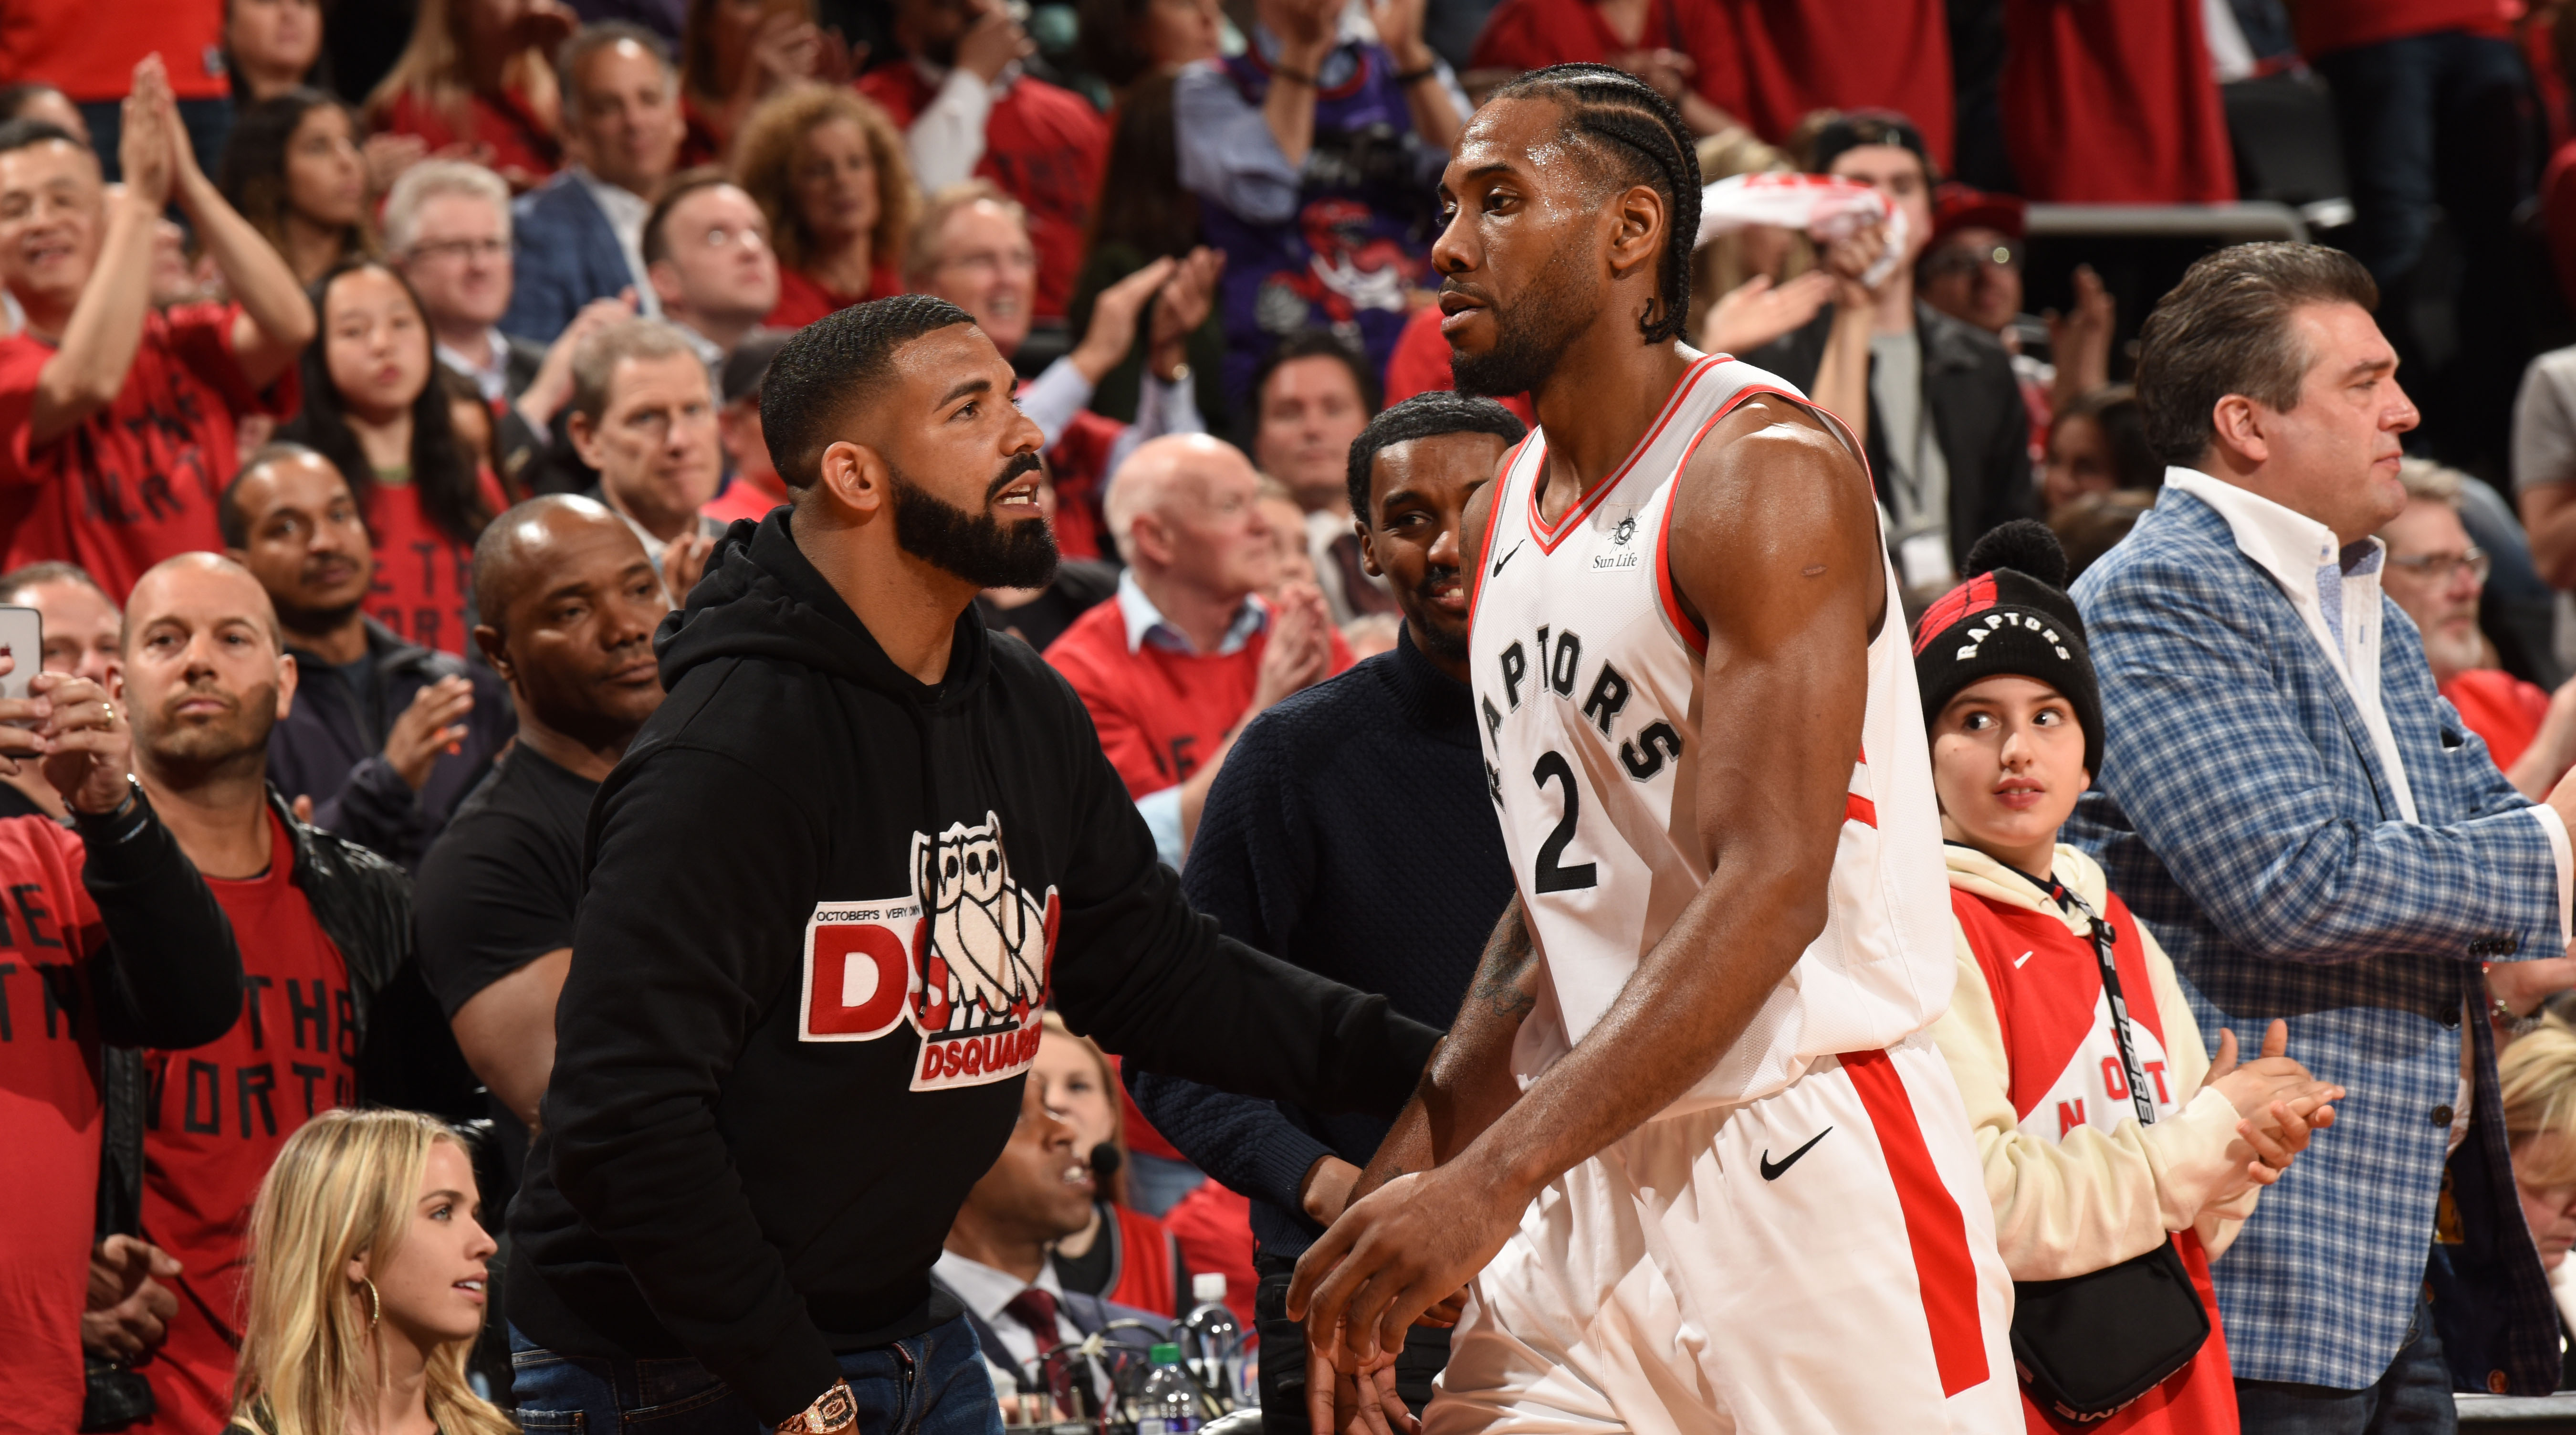 The Raptors-Bucks series was billed as Kawhi Leonard against Giannis Antetokounmpo. Kawhi and the Raptors are winning at the moment, with the Toronto star dominating on a level few expected.